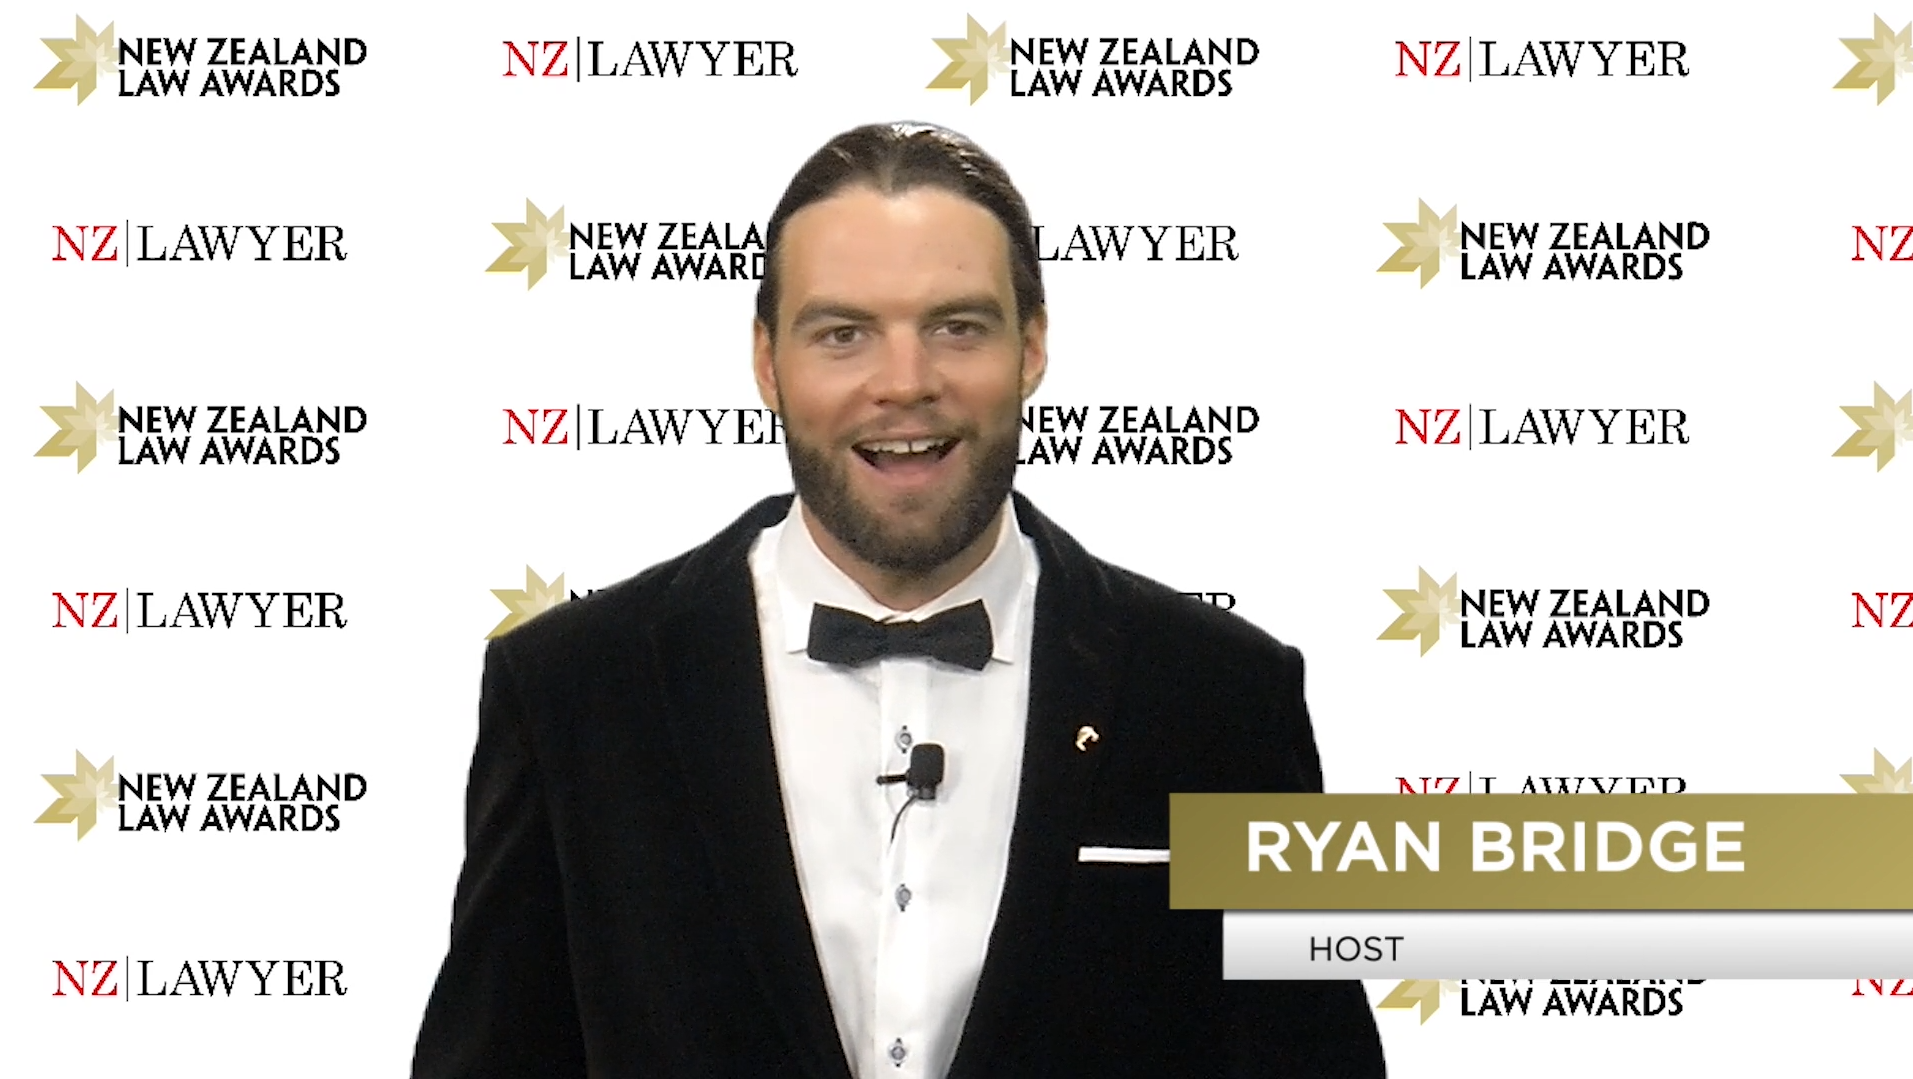 Meet your host for the virtual NZ Law Awards